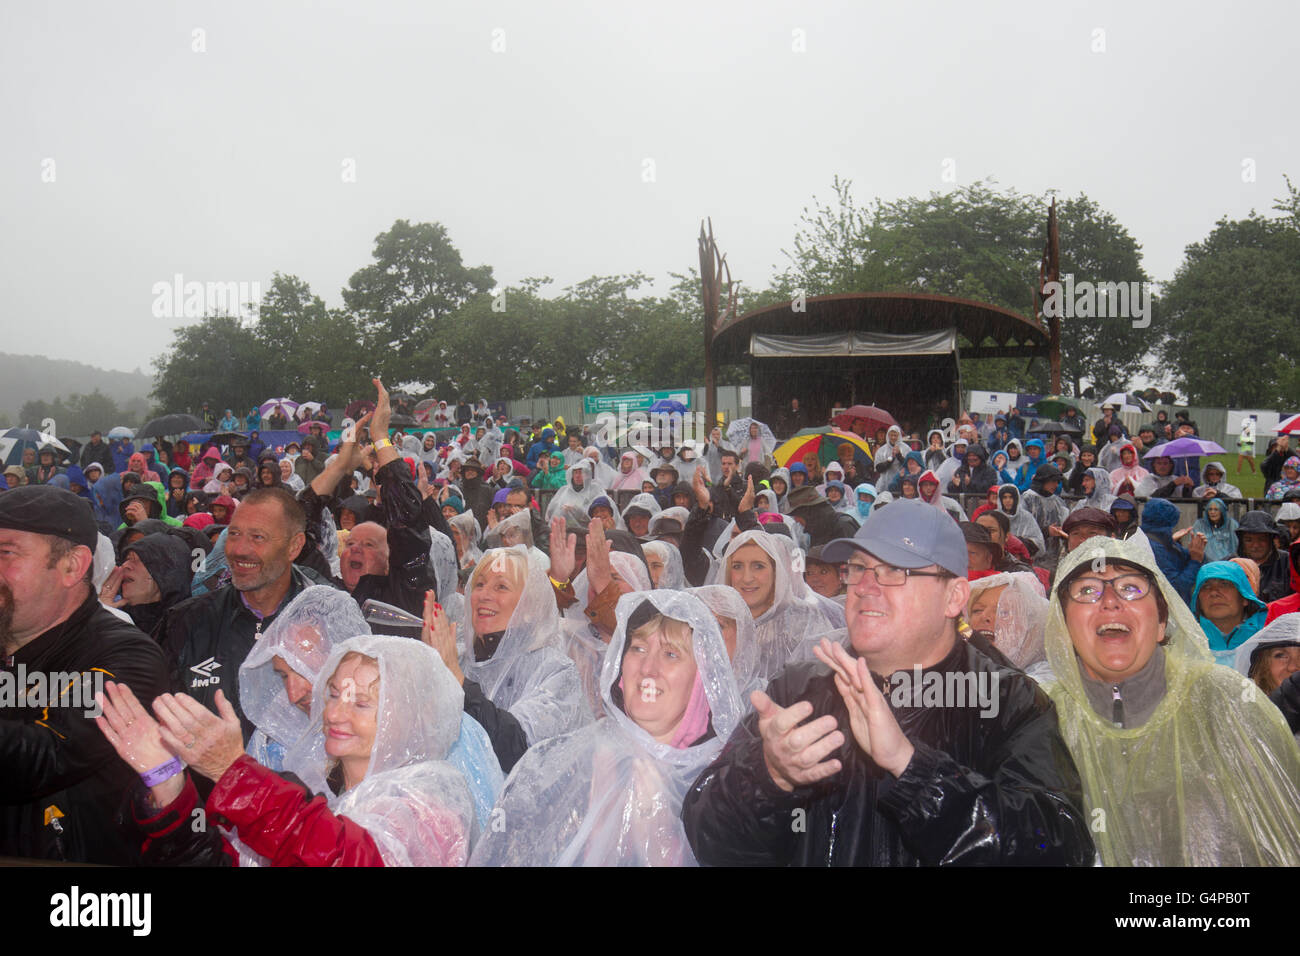 """Windermere, Cumbria, UK. 19th June 2016. to raise funds for the Cumbria Flood Appeal. Last night of weekend """"Rock - Stock Image"""